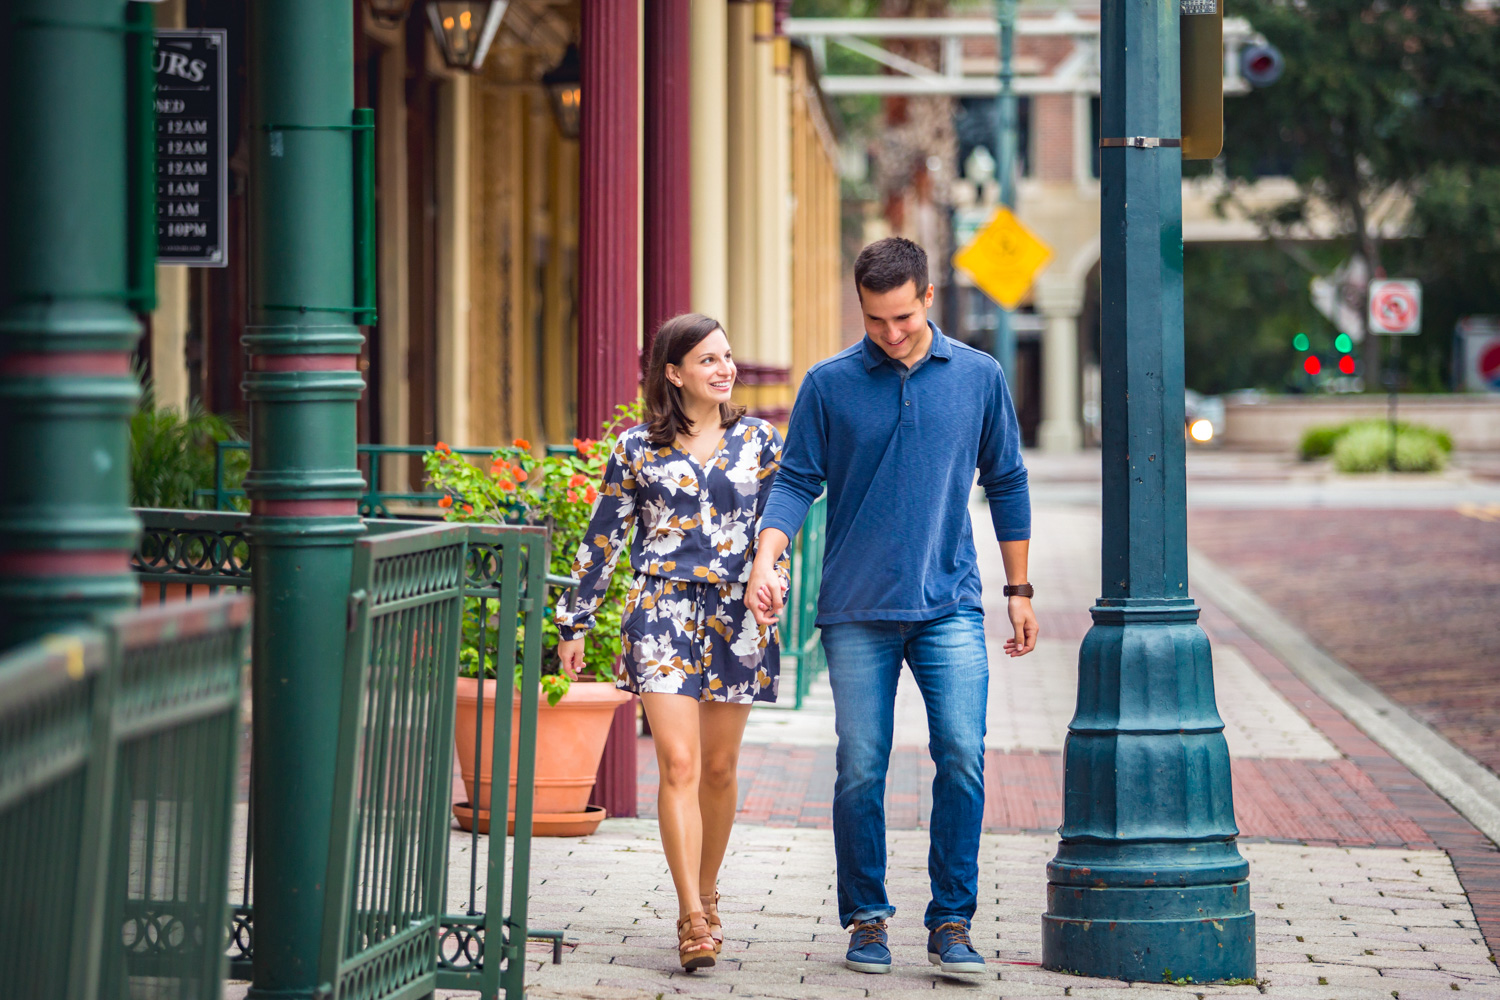 22 Oct 15Allie + David - Church Street Downtown orlando walkabout engagement - organic wedding photography 19.jpg